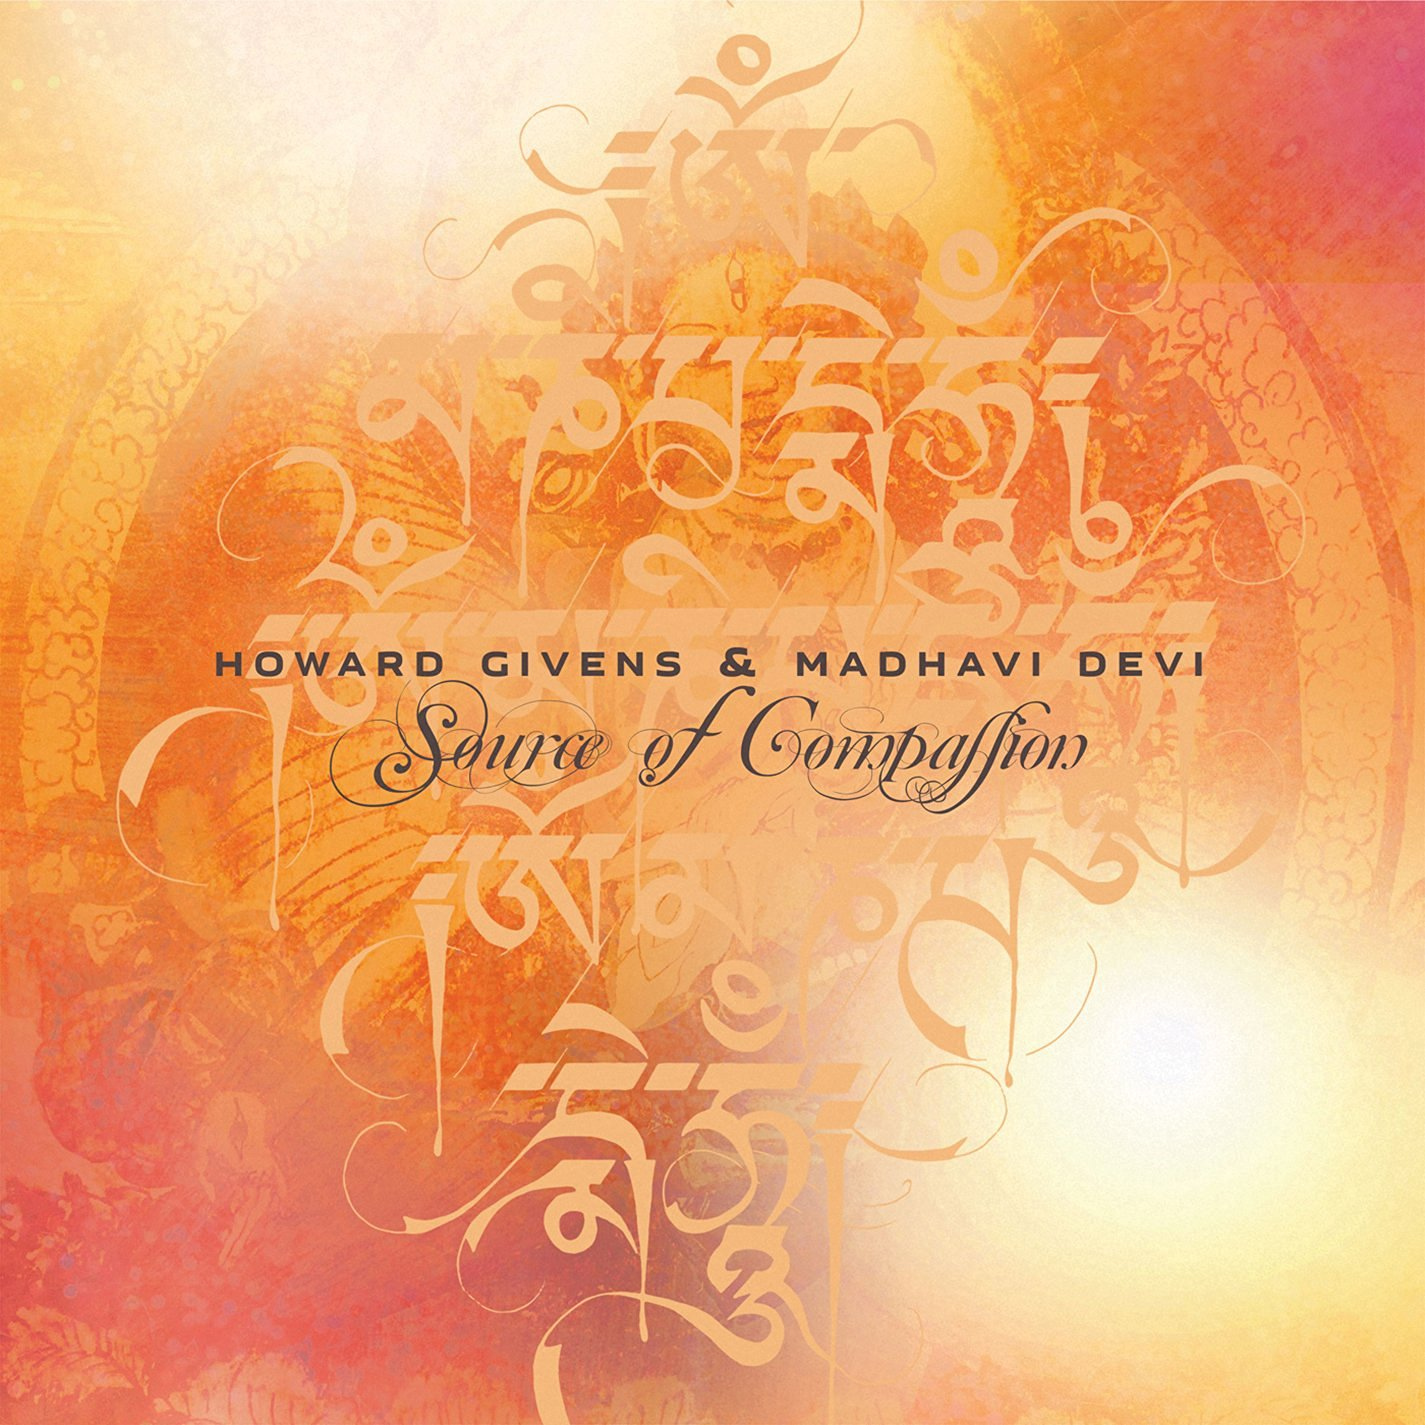 Howard Givens & Madhavi Devi — Source of Compassion